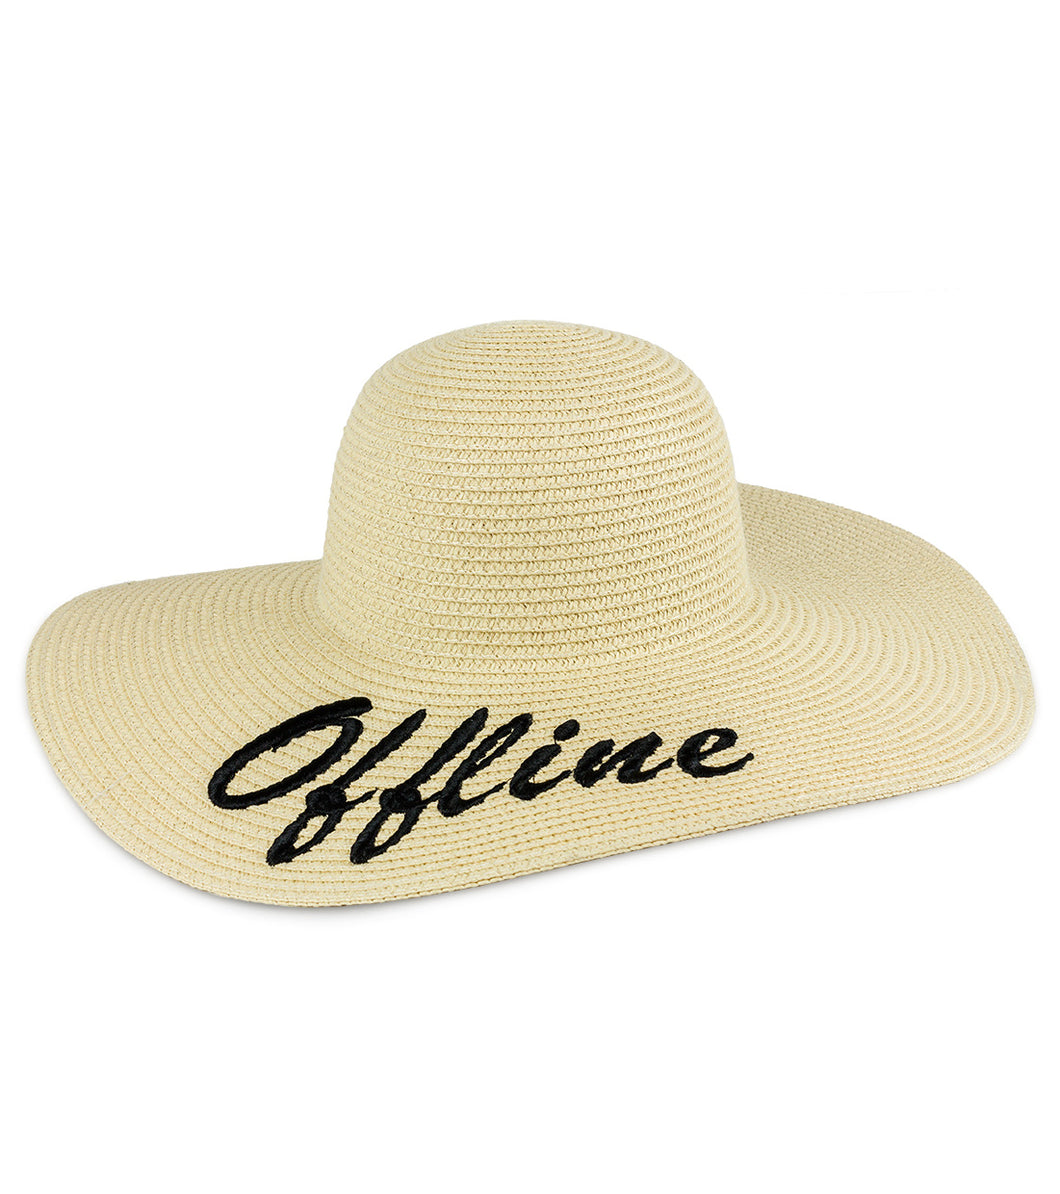 Offline Straw Floppy Hat - Just Jamie